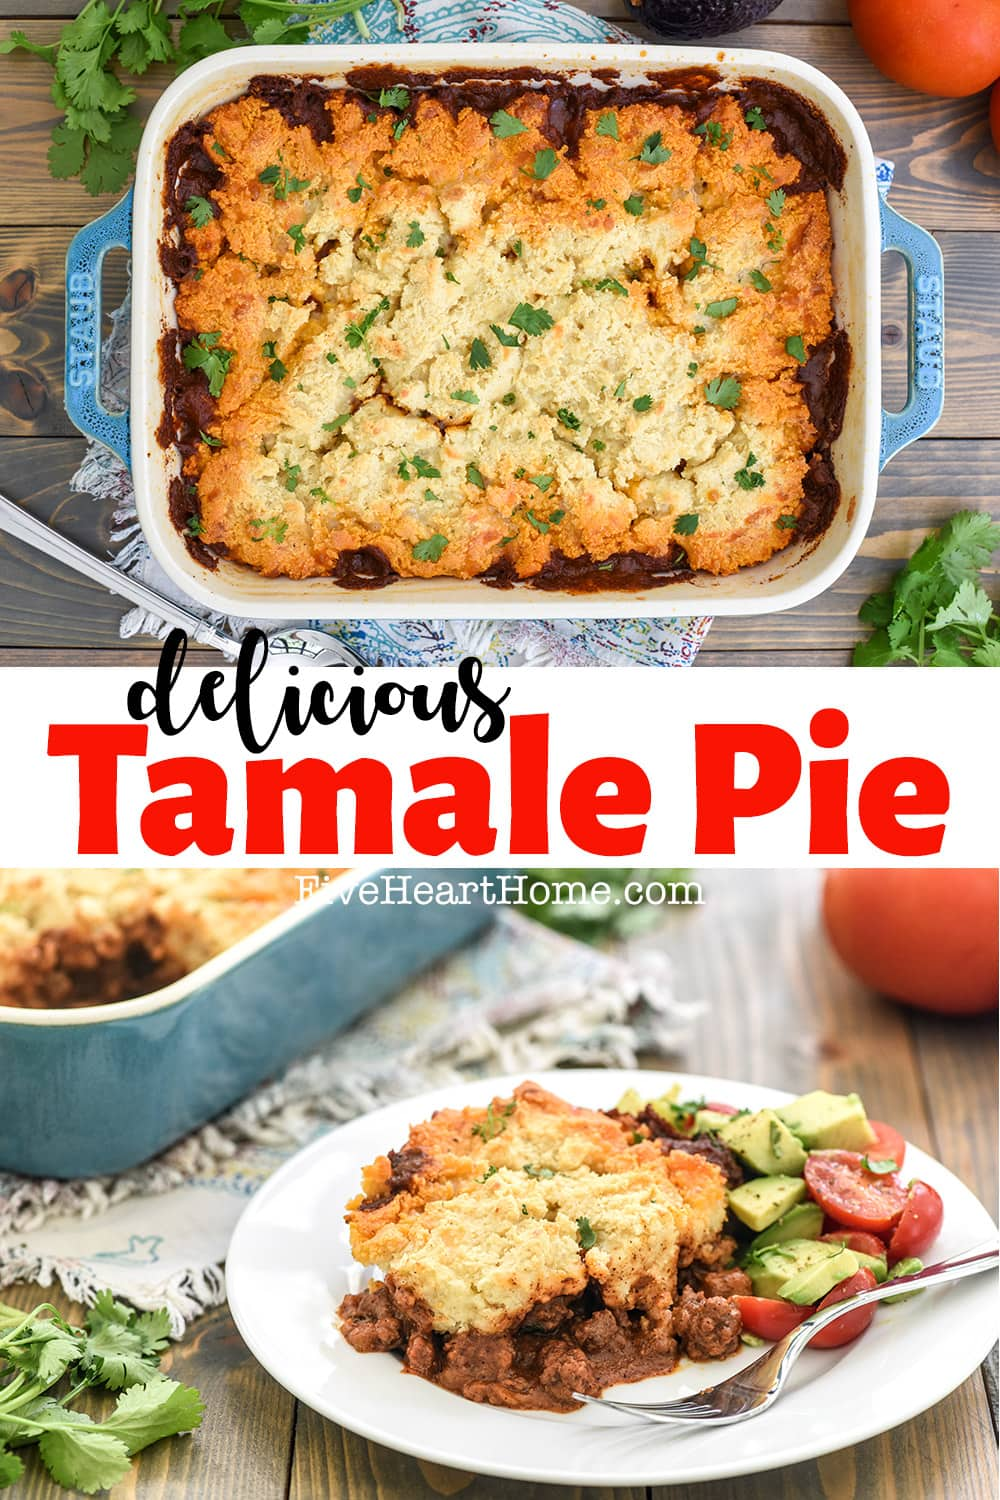 Tamale Pie ~ this easy dinner recipe features a zesty, flavorful ground beef filling with a delicious baked topping made of masa. The result is meal that tastes amazingly like a beef tamale and can easily be made gluten-free! | FiveHeartHome.com via @fivehearthome